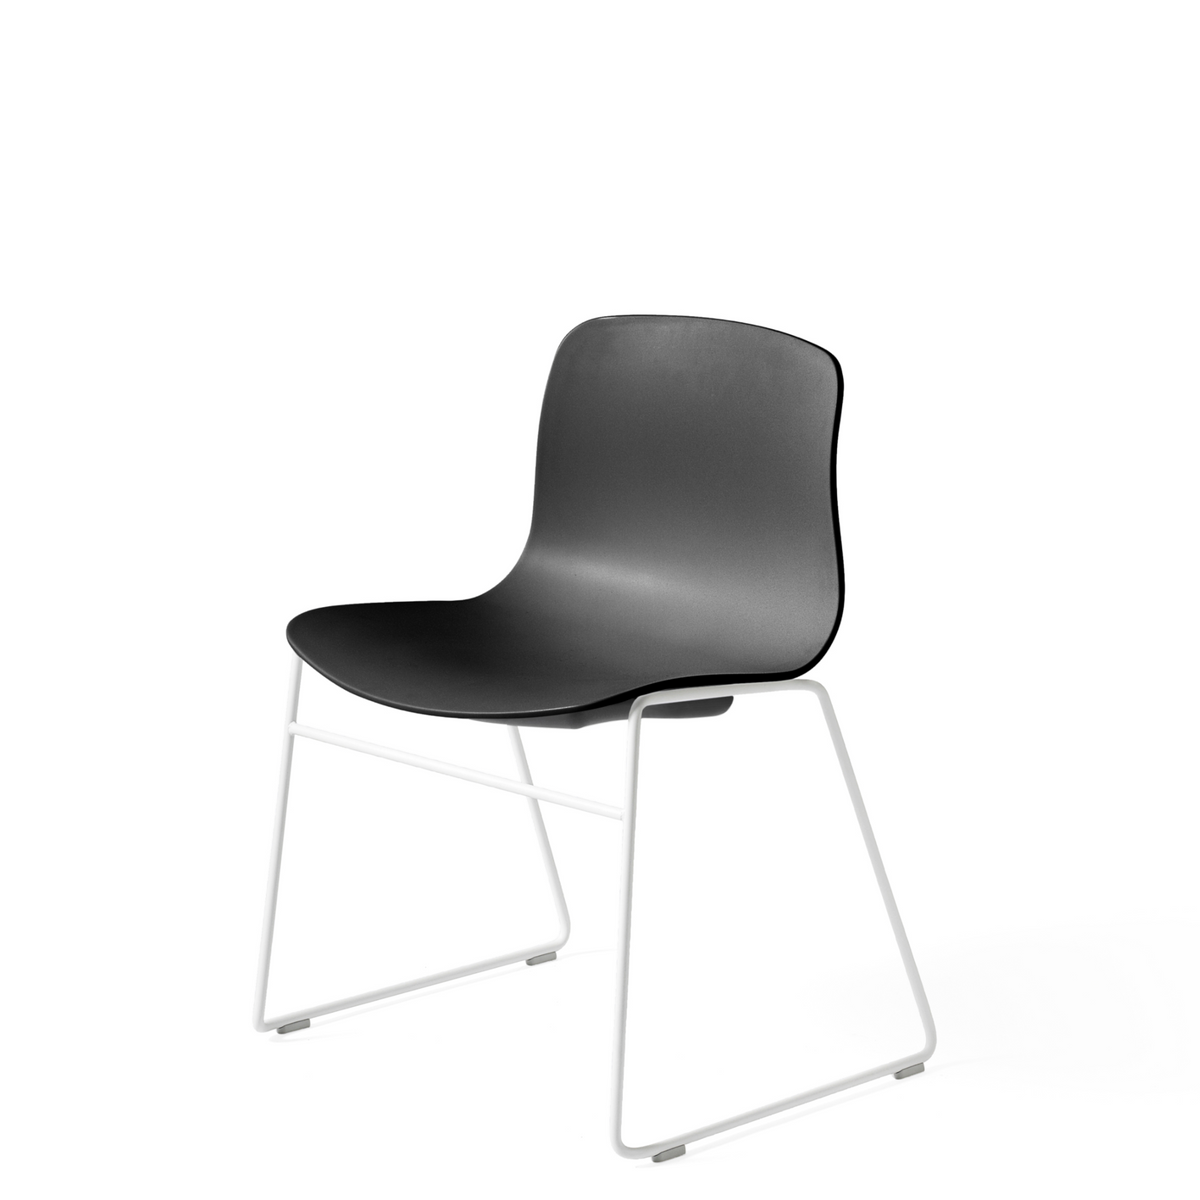 HAY About A Chair AAC 08 Black Stackable Chair with White Powder Coated Base